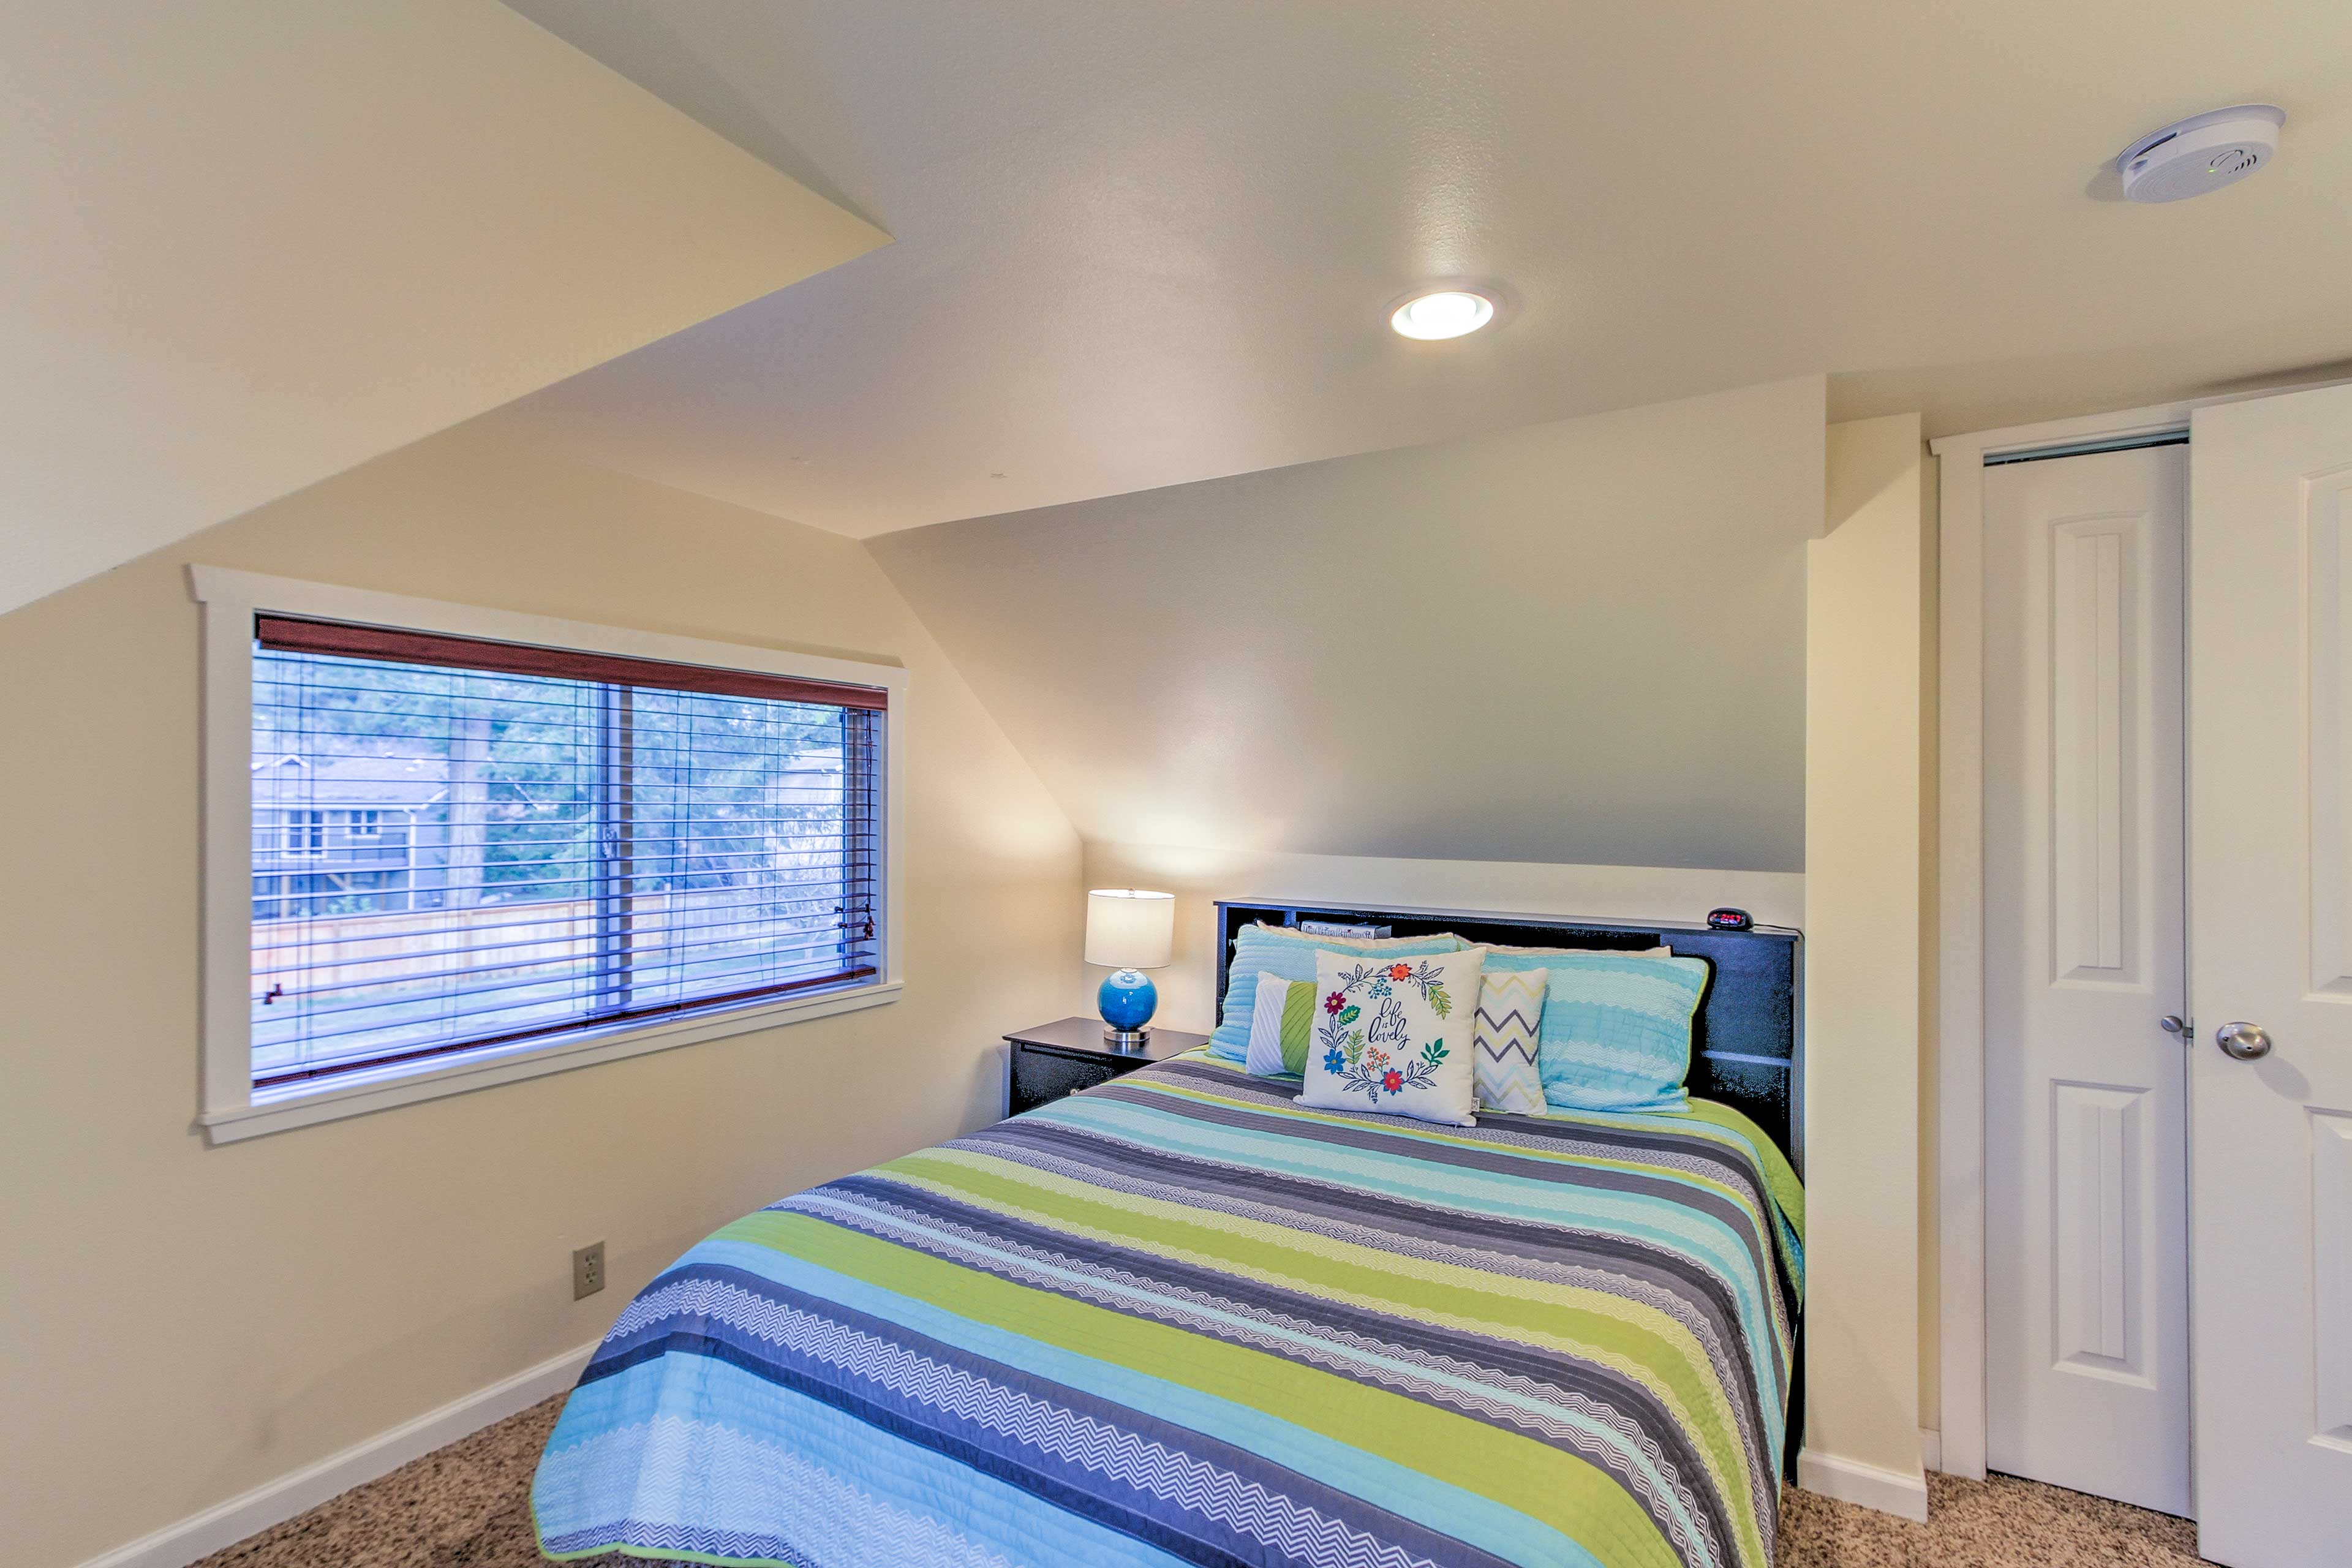 Climb under the covers of the queen bed in the second bedroom.